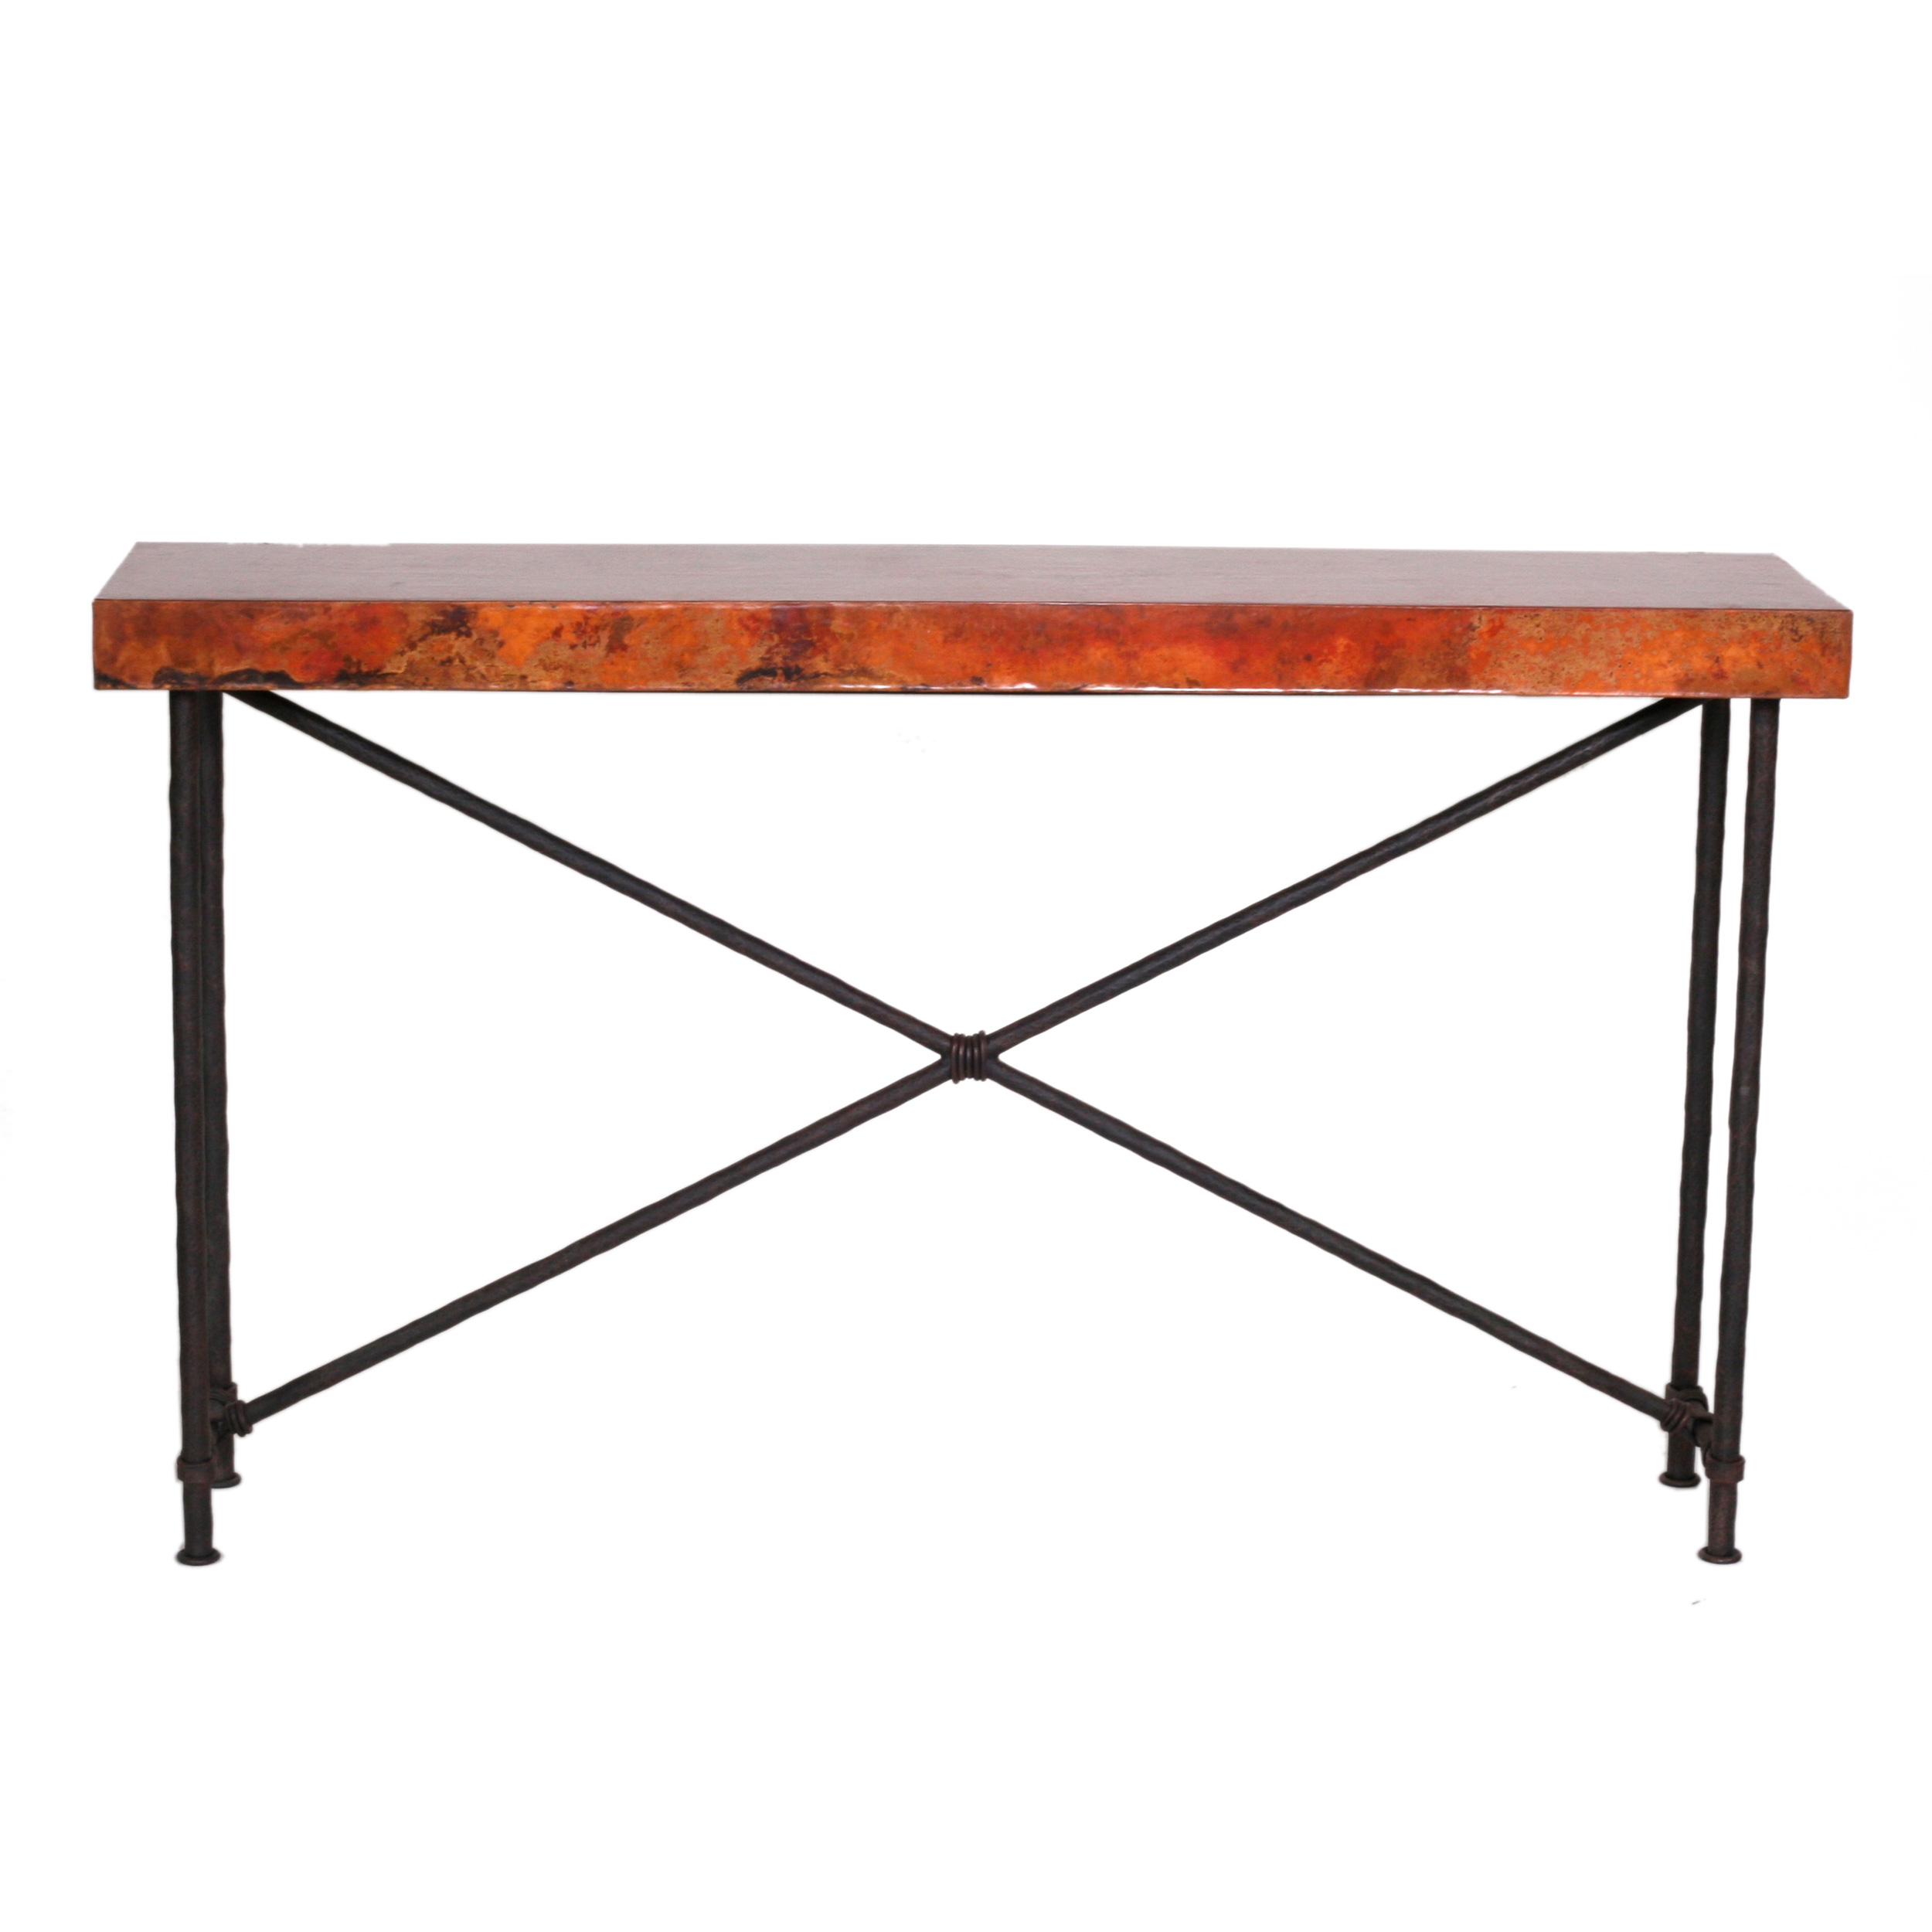 Iron Table Legs : Pictured here is the Burlington Console Table with 60